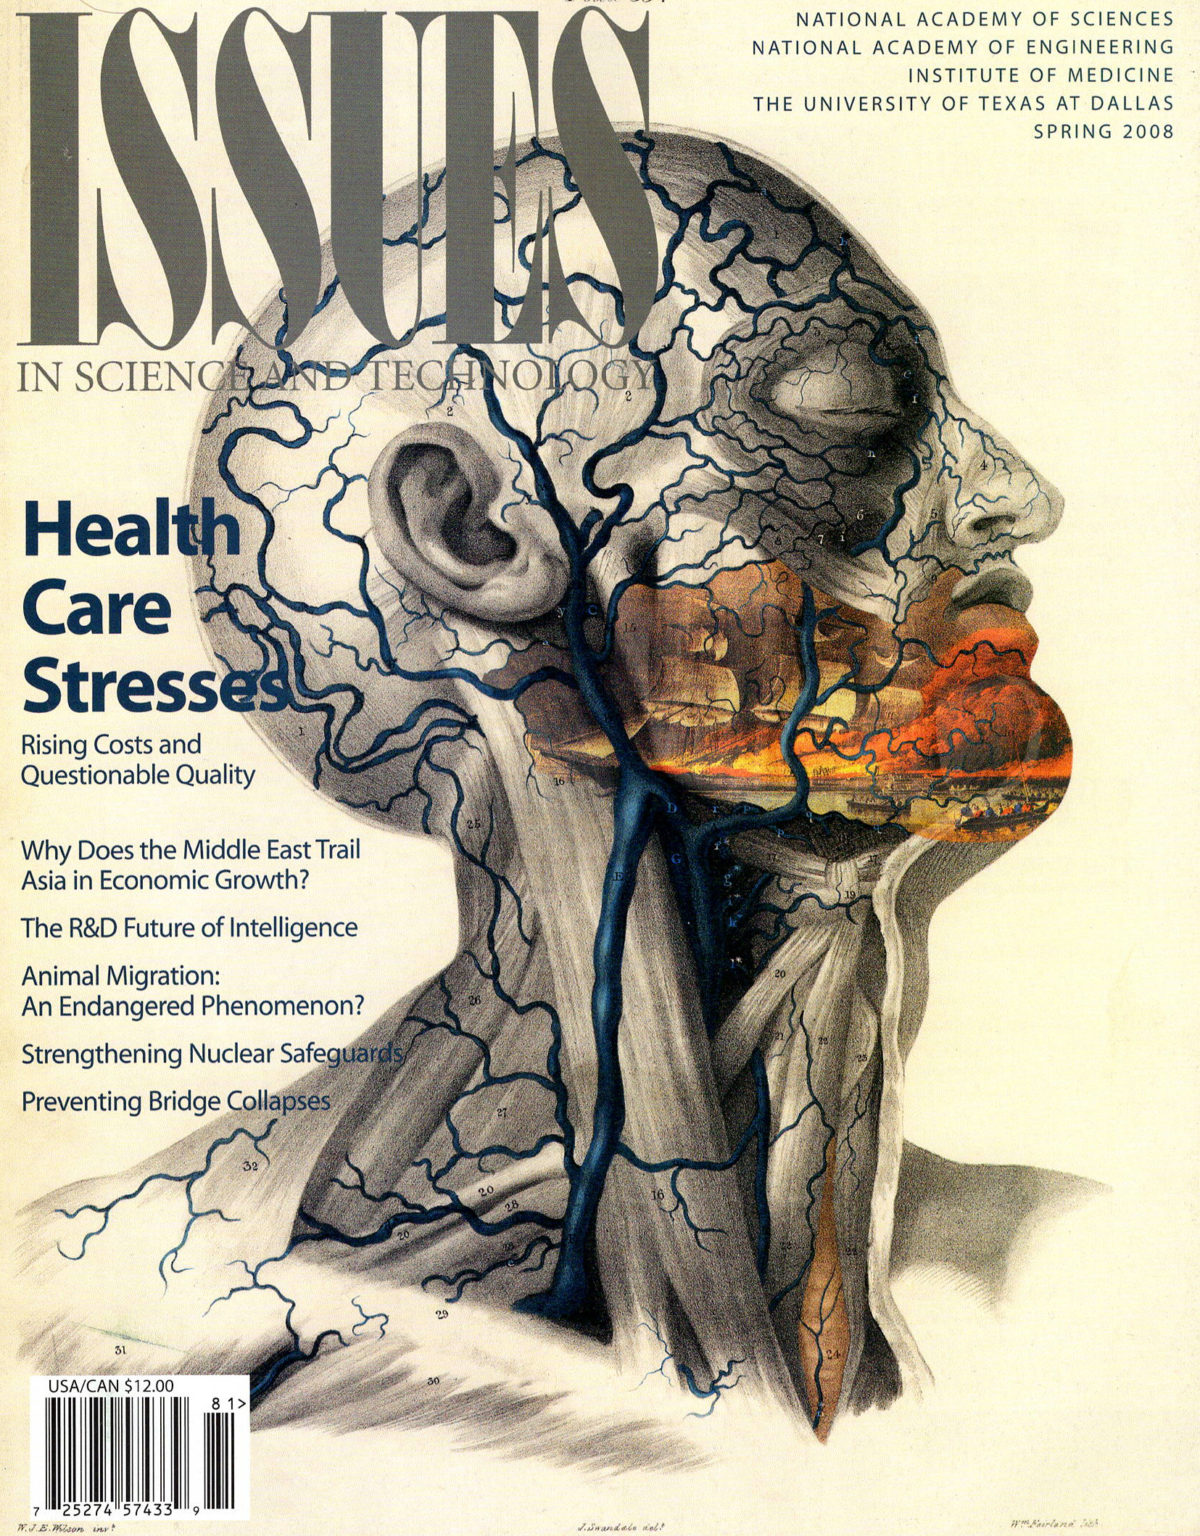 Issues Spring 2008 Health Care Stresses with scientific image of veins in a face